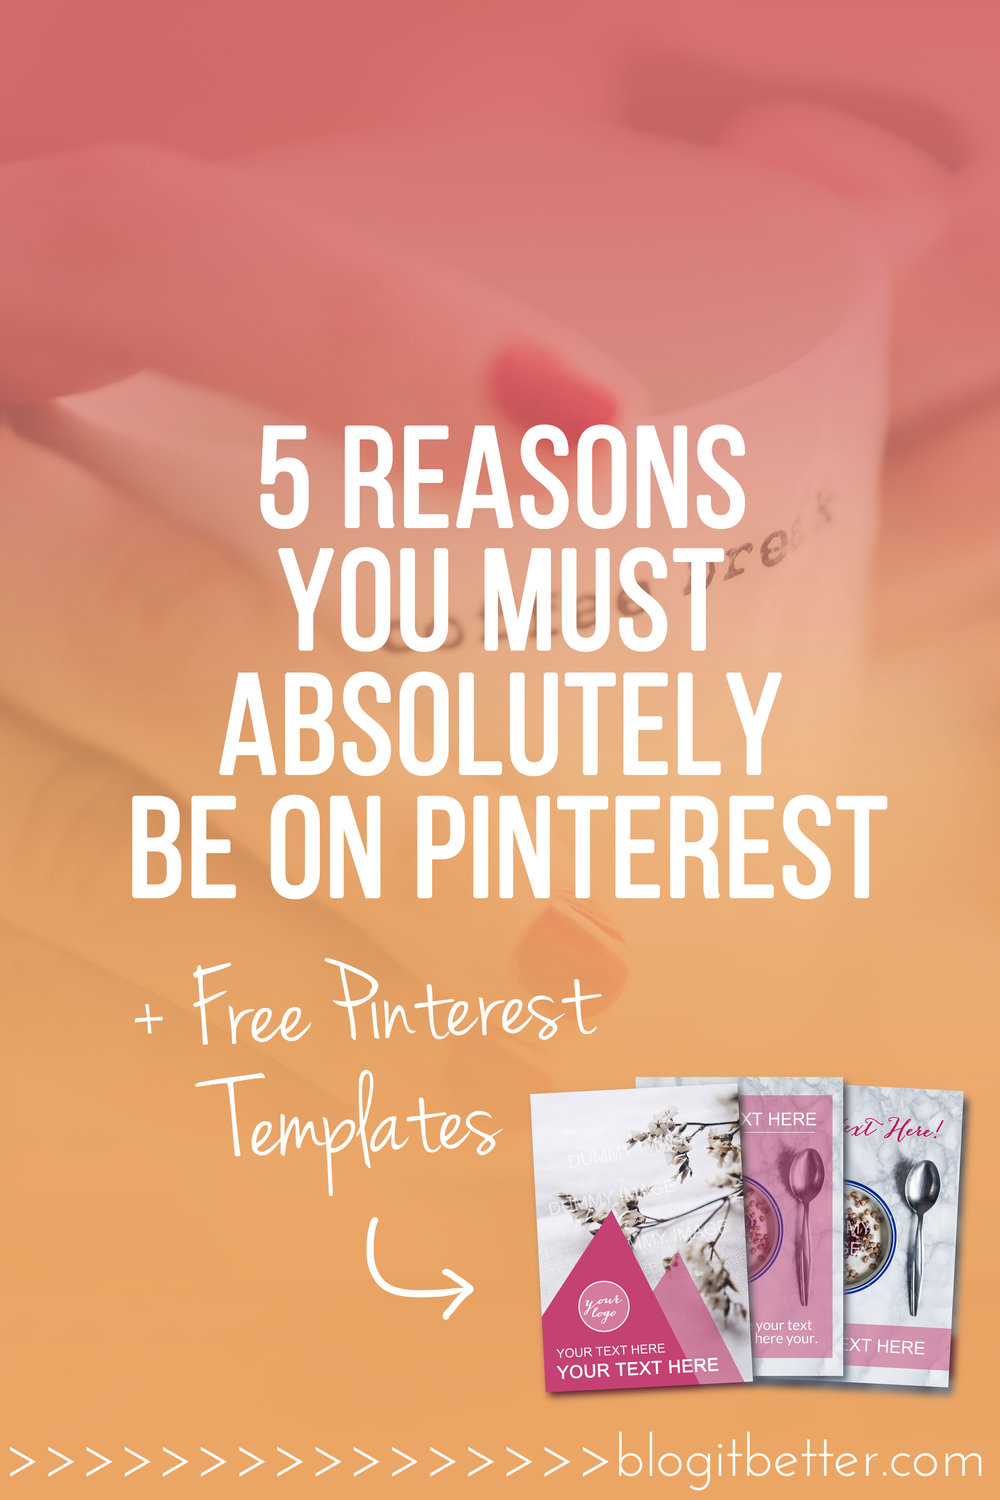 Why you absolutely need to be on pinterest + FREE download Custom Pinterest Templates! #pinterest #pinteresttips #pinterestforbusiness #pinterestforbloggers #socialmediatips #howtousepinterest #pinterestseo #pinteresttraffic #pinitbutton #wordpresstips #squarespacetips #blogitbetter #bloggingtips